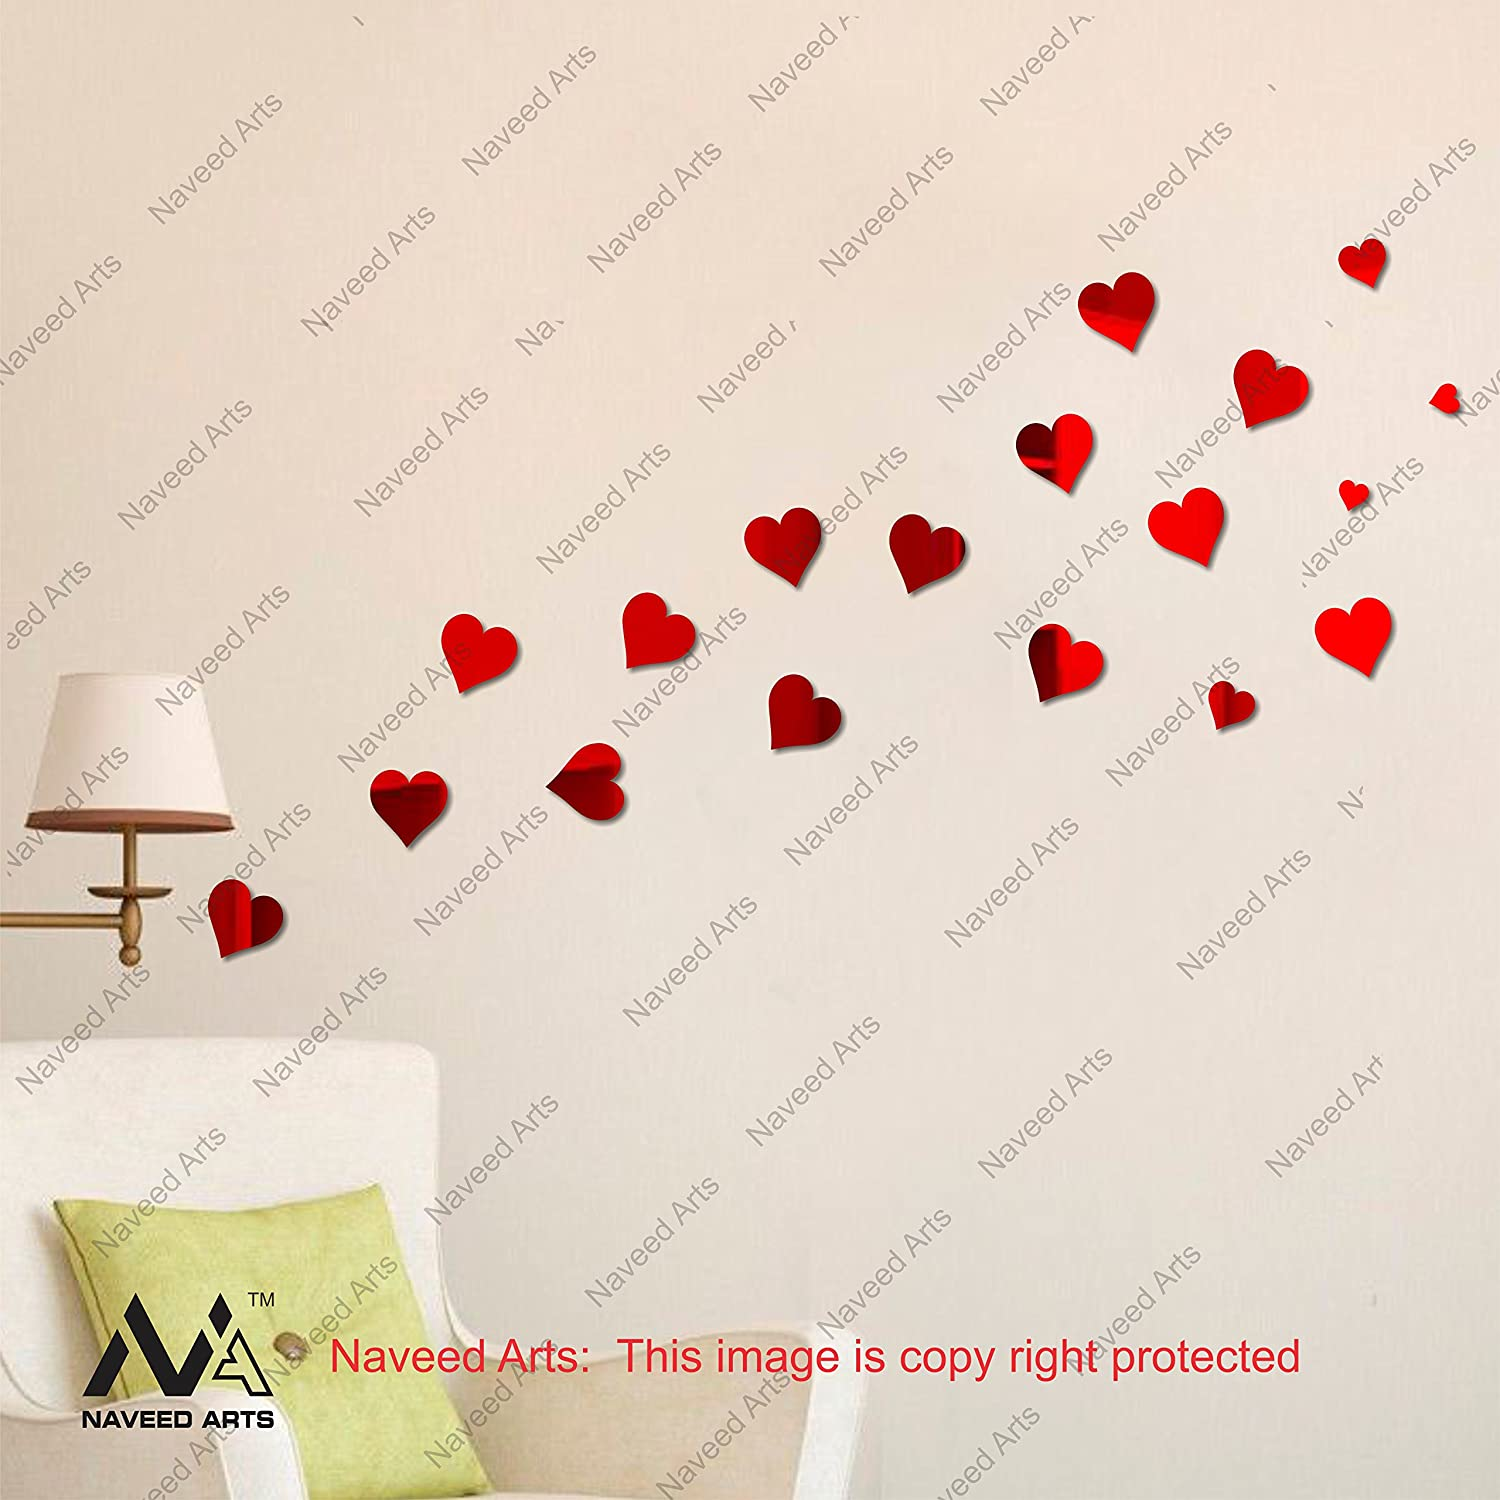 4611babe71 Buy Naveed Arts- Send Valentine Gifts Online - Love Heart - Acrylic Wall  Stickers -Red Mirror, JB009RM - 18 Pieces - 3mm Thick - Factory Outlet  Online at ...